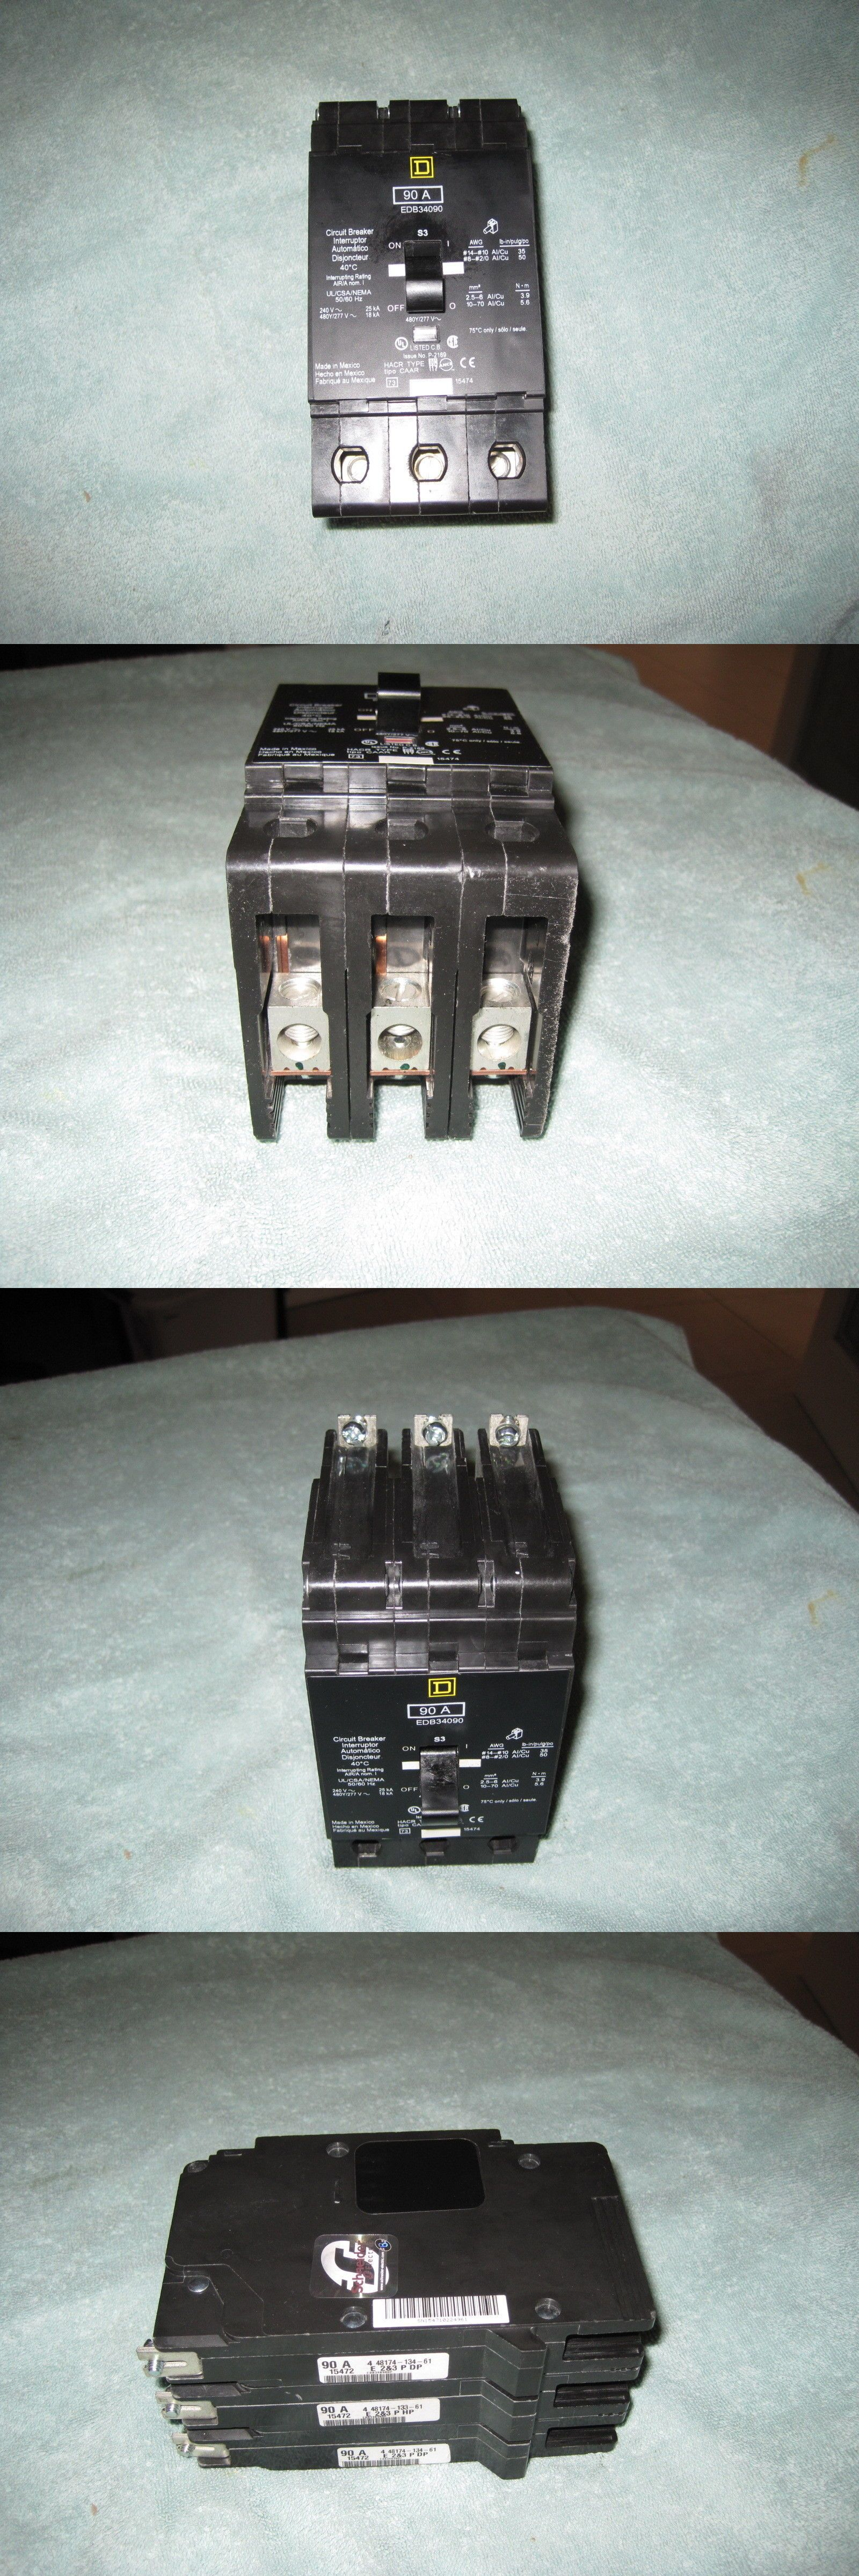 circuit breakers and fuse boxes 20596 square d edb34090 circuit breaker 3 pole 90 amp 480 volt buy it now only 159 95 on ebay circuit breakers  [ 1600 x 4800 Pixel ]